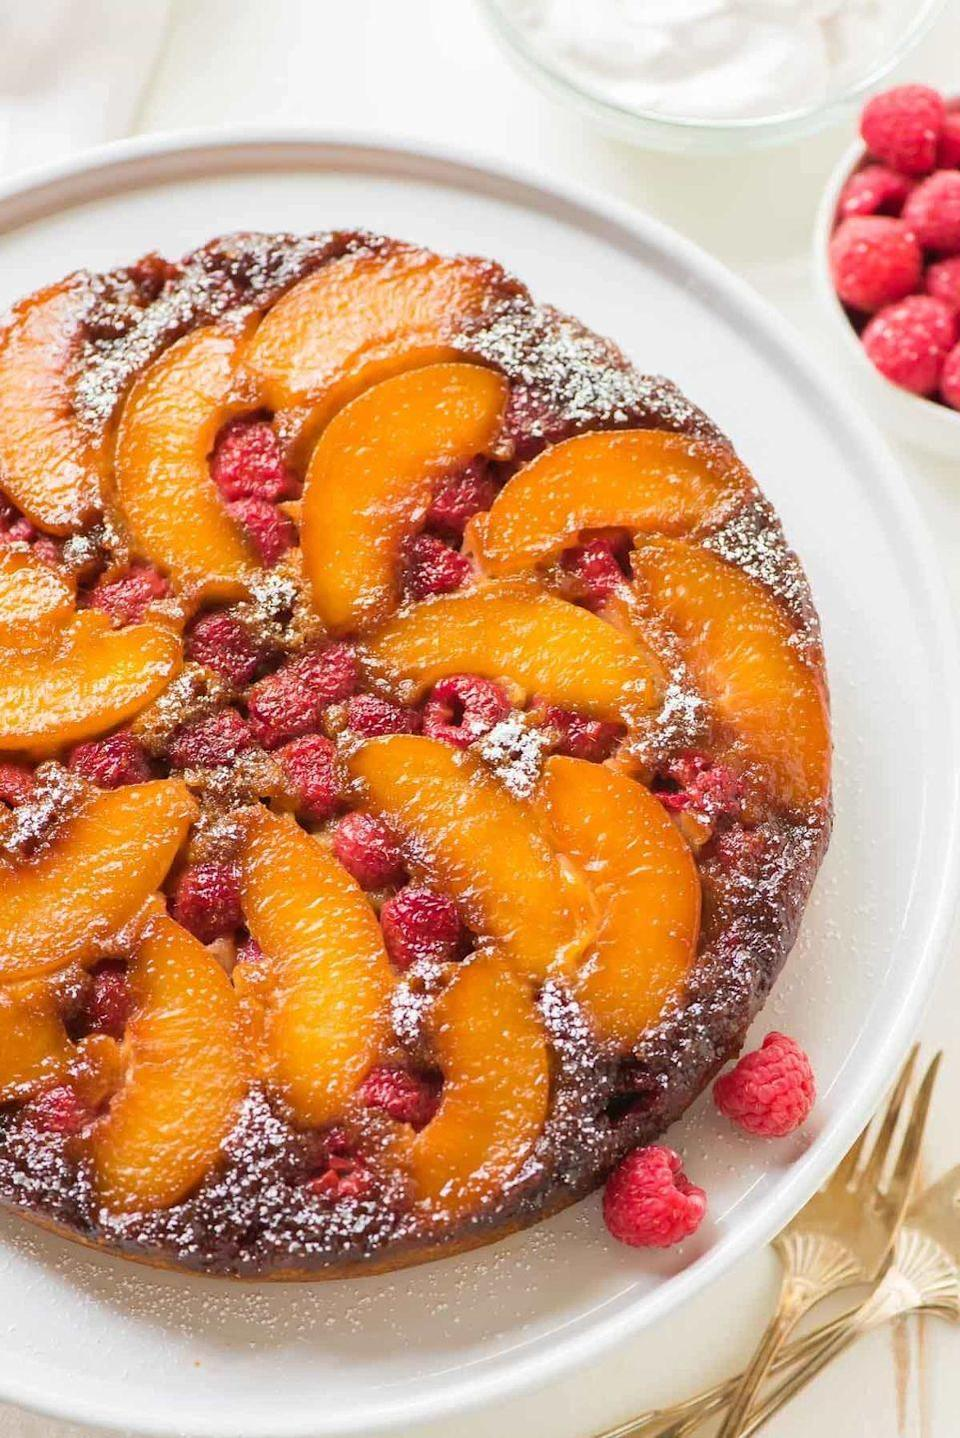 """<p>Upside-down cake doesn't have to be made with pineapple and cherries. In fact, this peach-raspberry version might actually knock the original flavors out of first place.<br></p><p><strong>Get the recipe at <a href=""""https://www.wellplated.com/peach-upside-down-cake/"""" rel=""""nofollow noopener"""" target=""""_blank"""" data-ylk=""""slk:Well Plated by Erin"""" class=""""link rapid-noclick-resp"""">Well Plated by Erin</a>.</strong></p><p><a class=""""link rapid-noclick-resp"""" href=""""https://go.redirectingat.com?id=74968X1596630&url=https%3A%2F%2Fwww.walmart.com%2Fsearch%2F%3Fquery%3Dpioneer%2Bwoman%2Bdishes&sref=https%3A%2F%2Fwww.thepioneerwoman.com%2Ffood-cooking%2Frecipes%2Fg36382592%2Fpeach-desserts%2F"""" rel=""""nofollow noopener"""" target=""""_blank"""" data-ylk=""""slk:SHOP DISHES"""">SHOP DISHES</a></p>"""